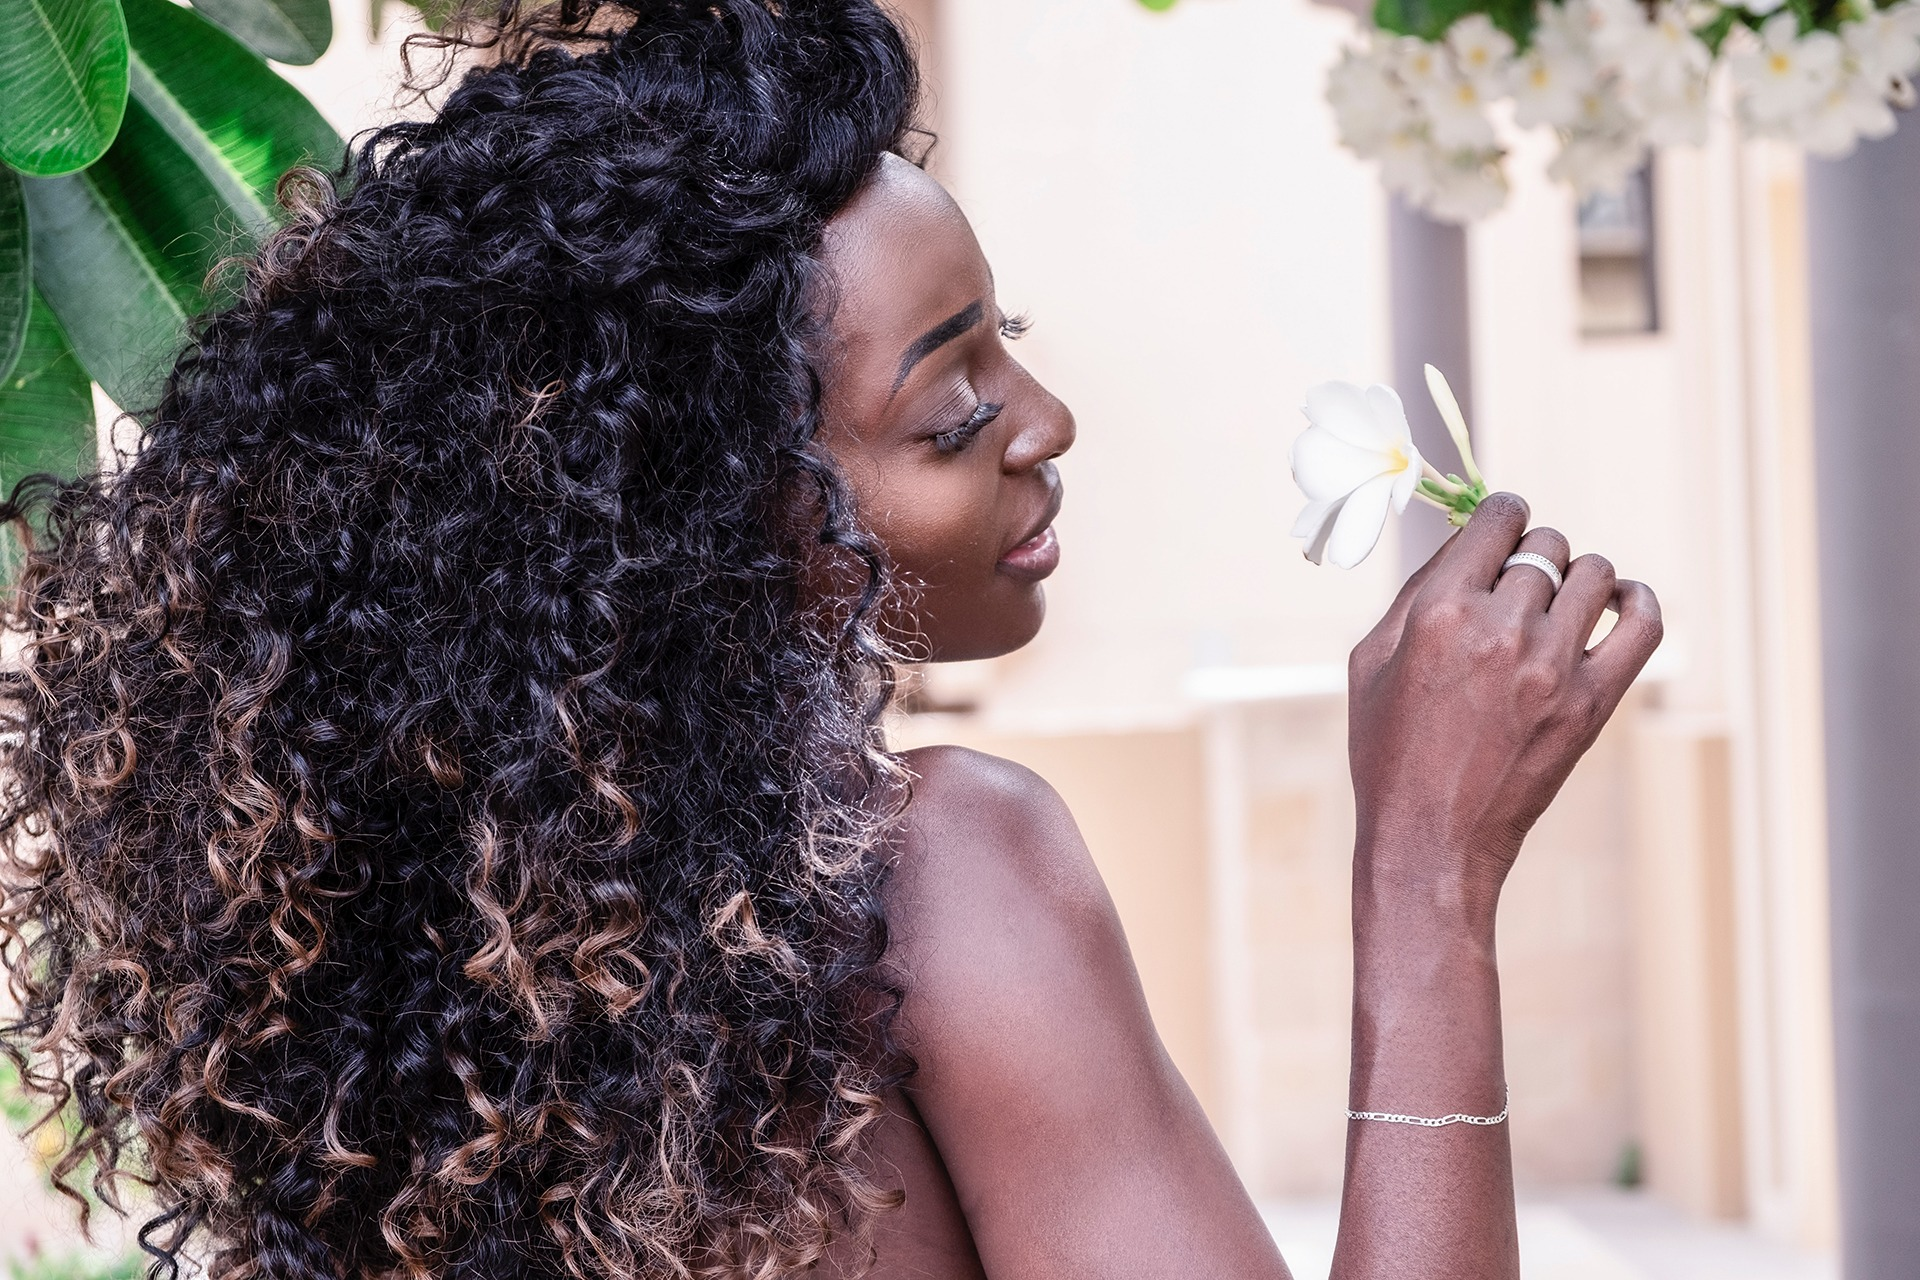 CHANEL'S SUMMER HAIR FAVOURITES | Palmers, Organics, Creme Of Nature & Fantasia